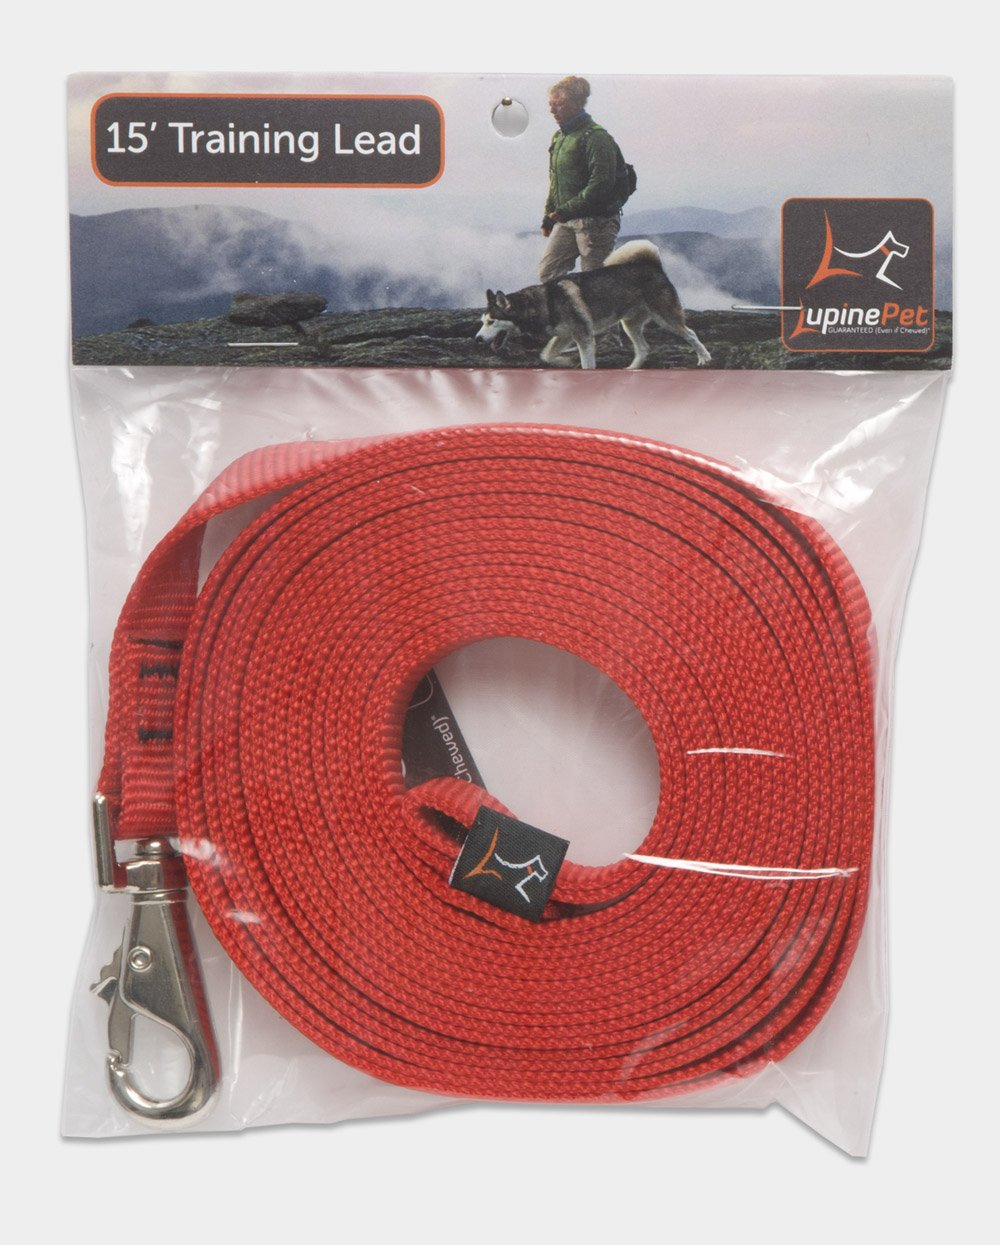 LupinePet Basics 3/4'' Red 15-foot Extra-Long Training Lead/Leash for Medium and Larger Dogs by LupinePet